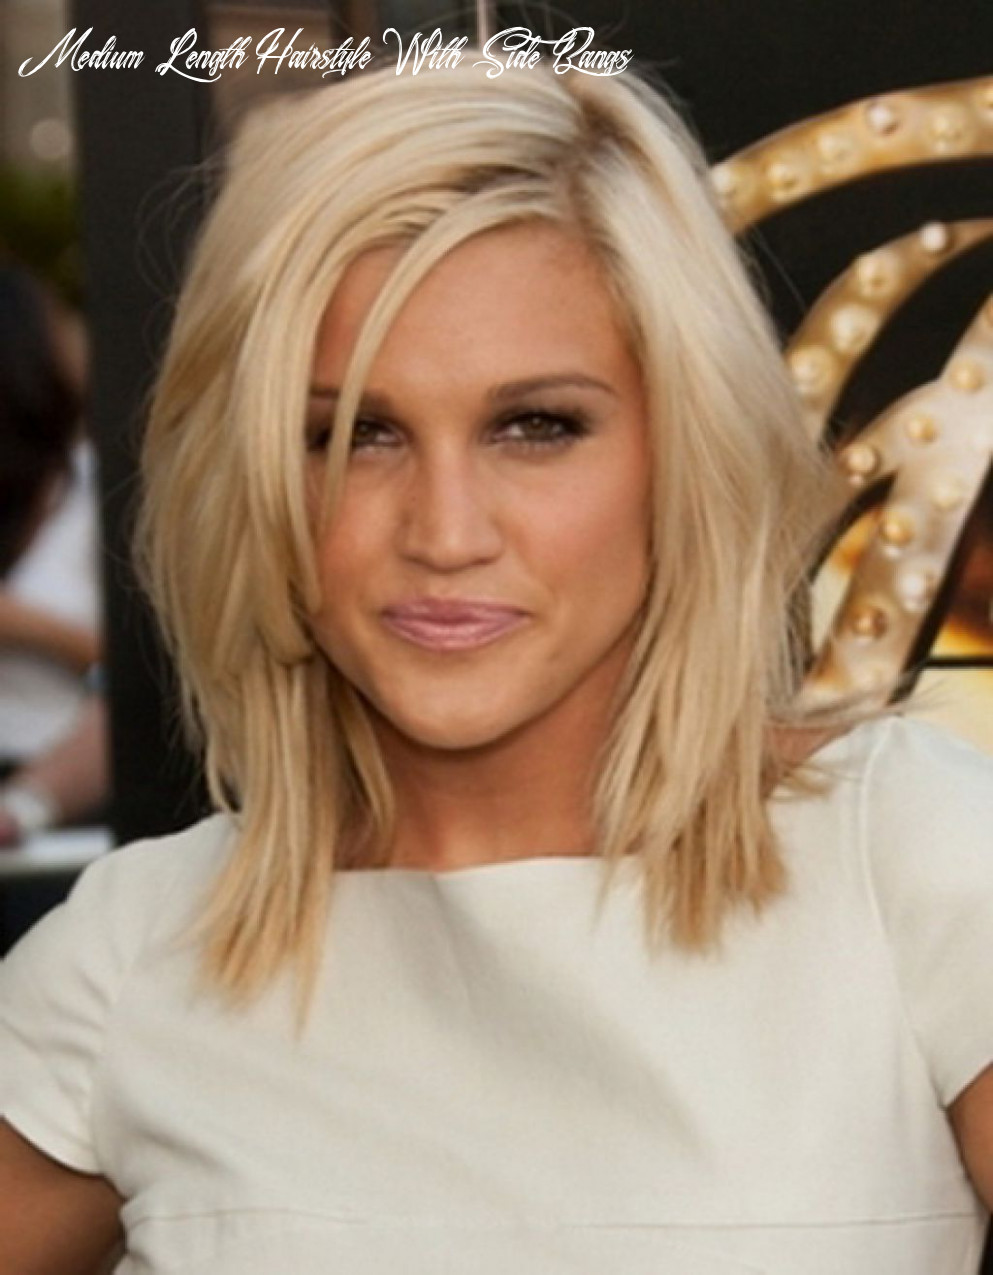 Medium hairstyle with side bangs   find your perfect hair style medium length hairstyle with side bangs